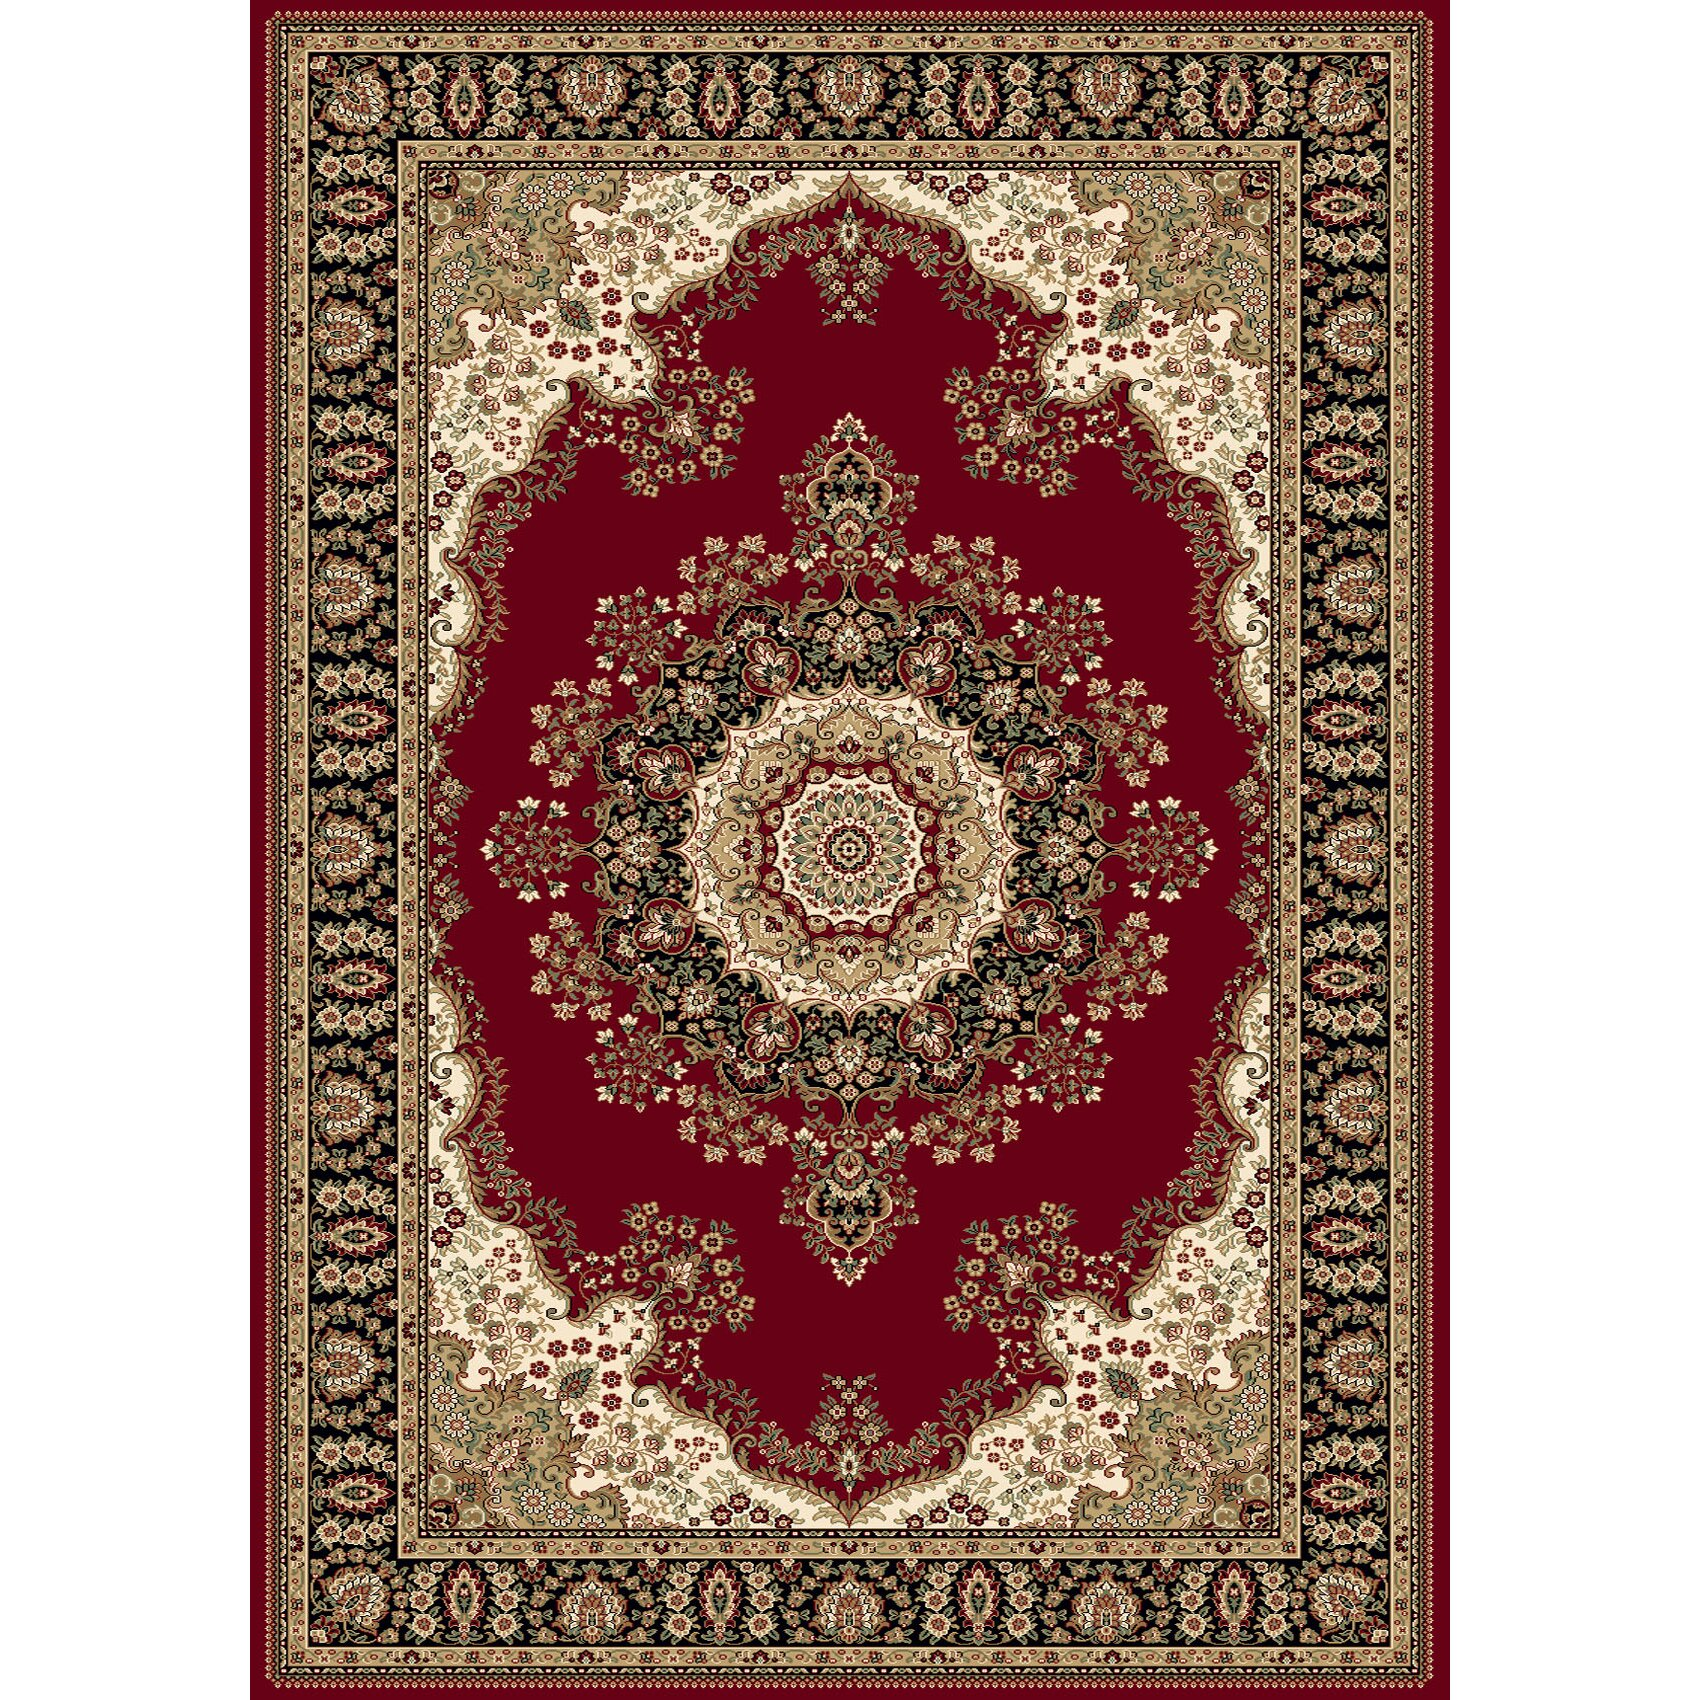 Foyer Rugs For Christmas: Home Dynamix Regency Red Area Rug & Reviews